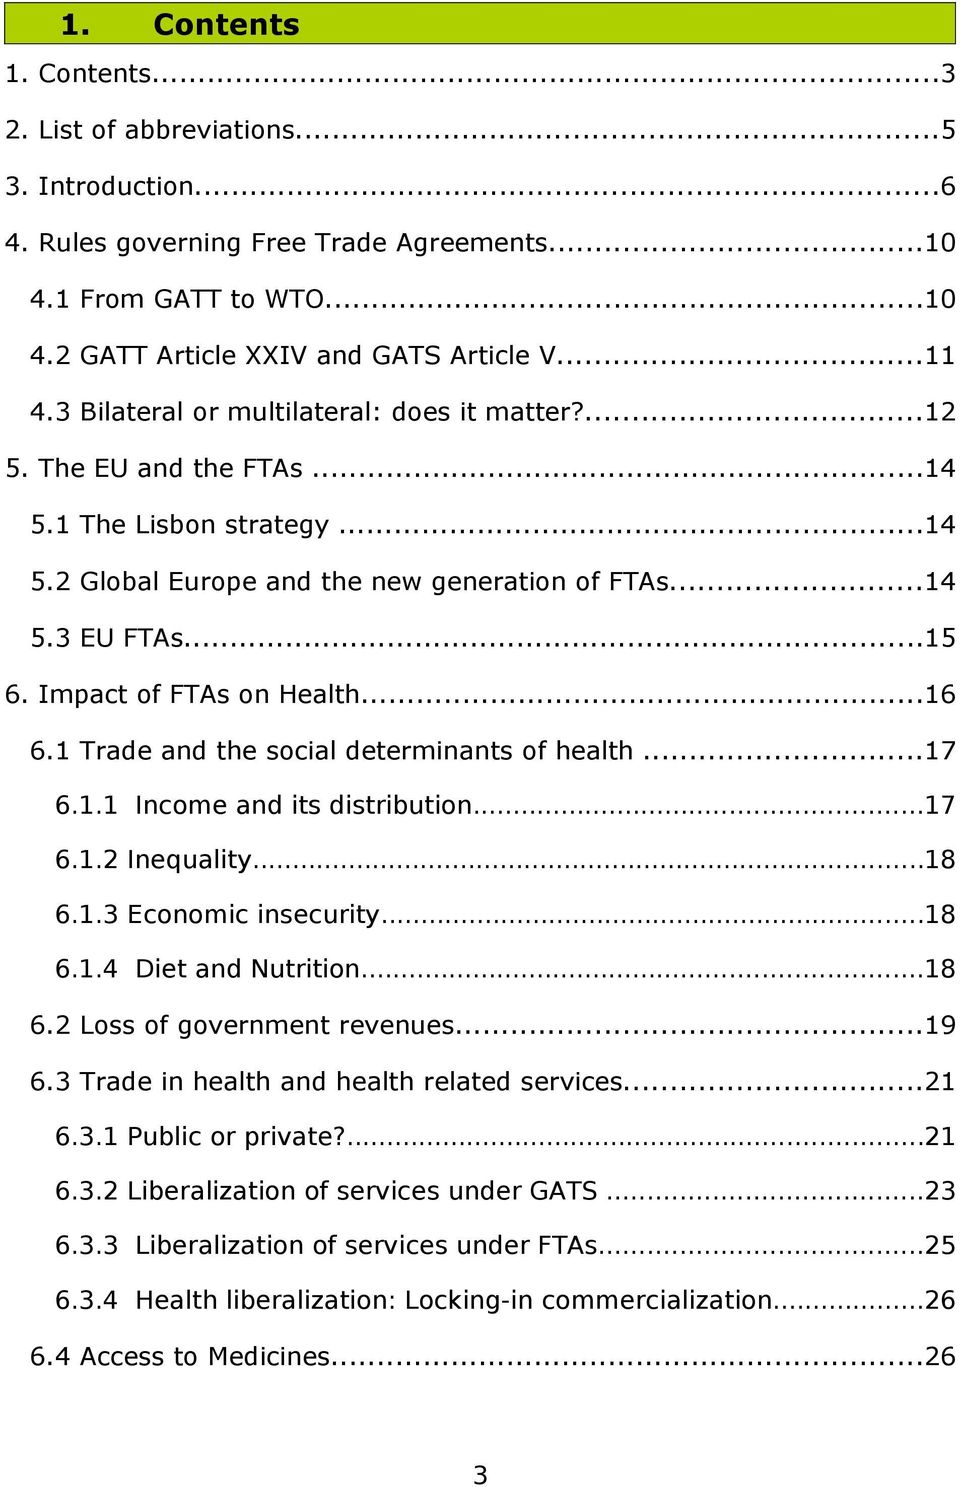 Impact of FTAs on Health...16 6.1 Trade and the social determinants of health...17 6.1.1 Income and its distribution...17 6.1.2 Inequality...18 6.1.3 Economic insecurity...18 6.1.4 Diet and Nutrition.